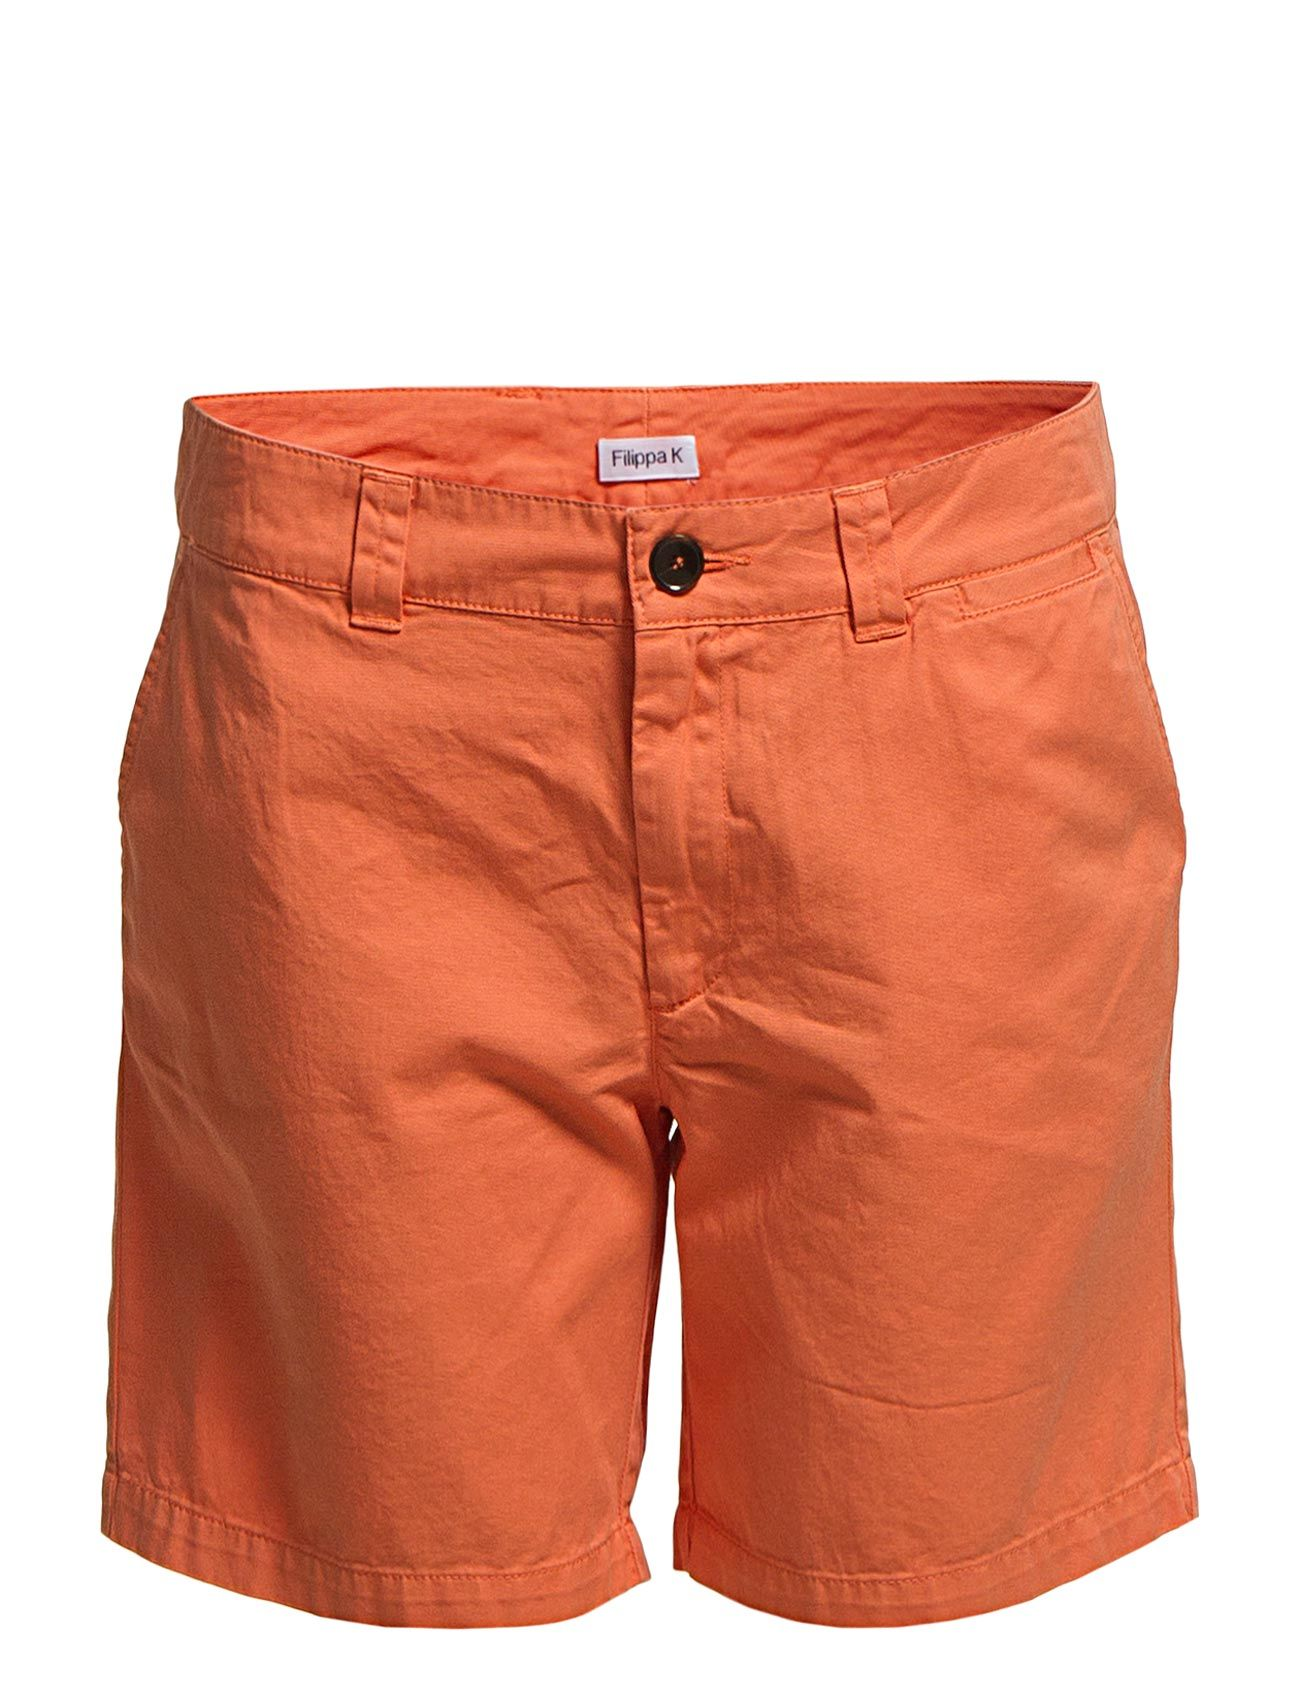 Rita Twill Cotton Chino Shorts